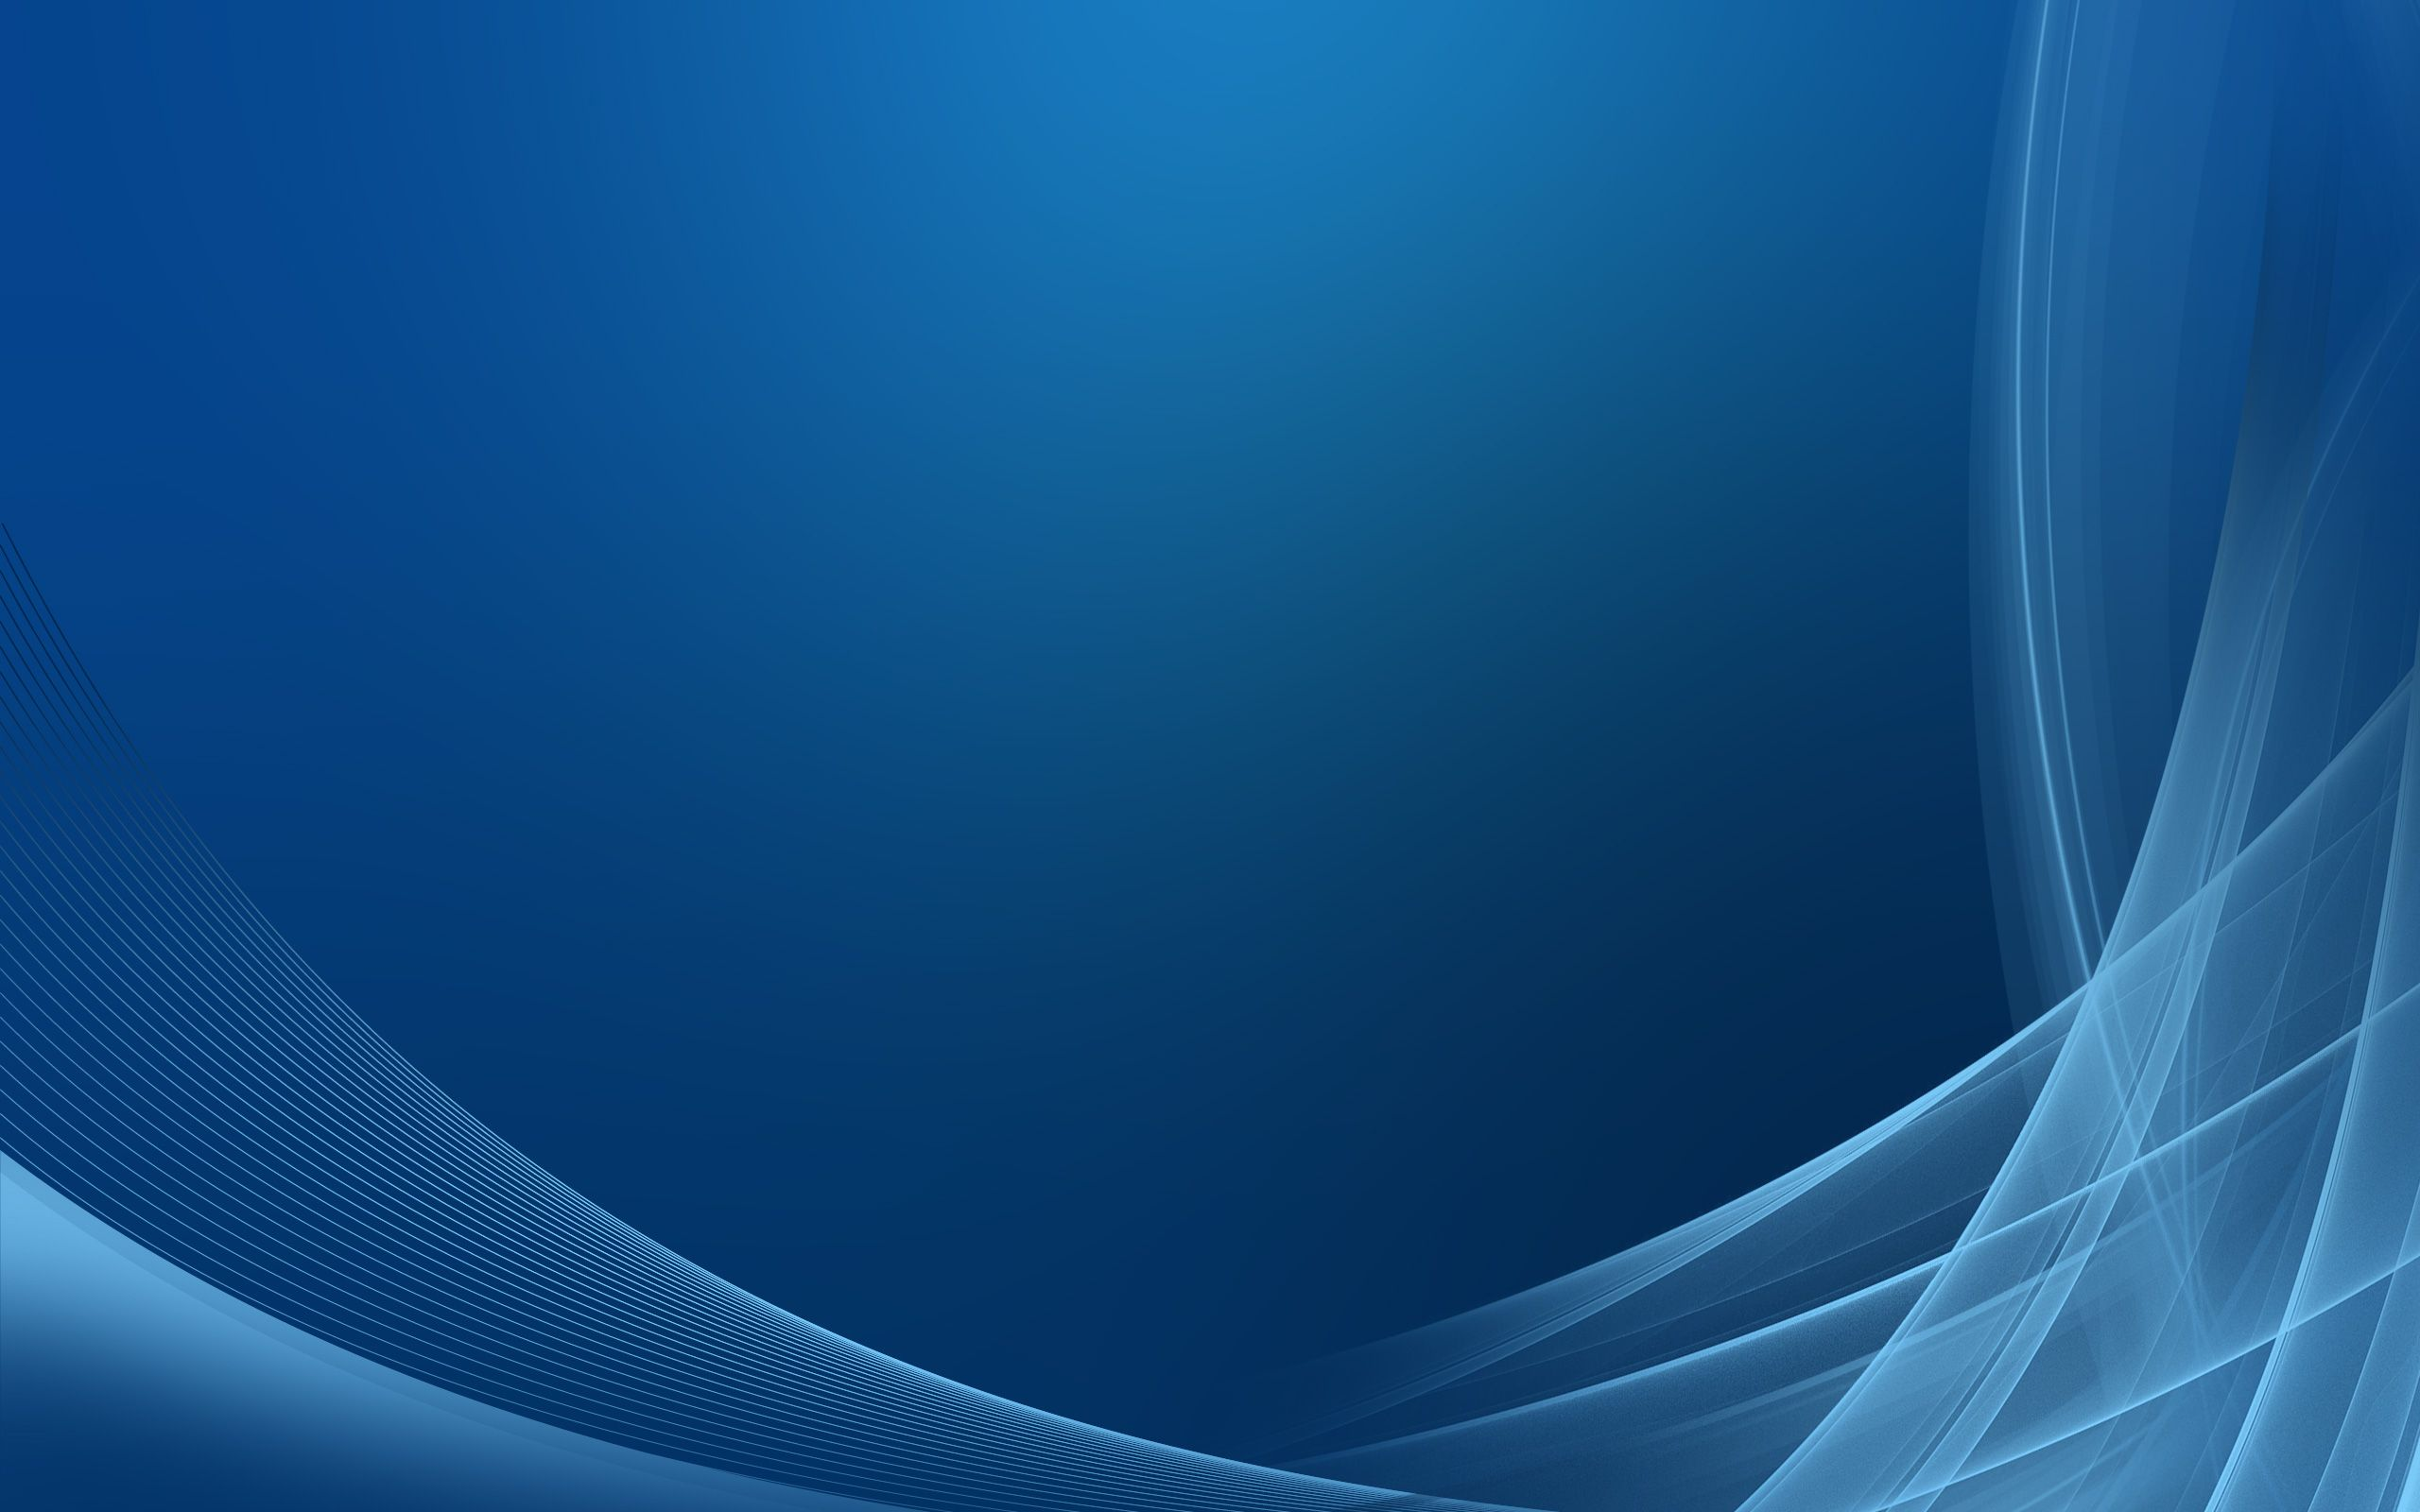 2560x1600 Blue Wallpapers HD Backgrounds descarga gratuita - Baltana